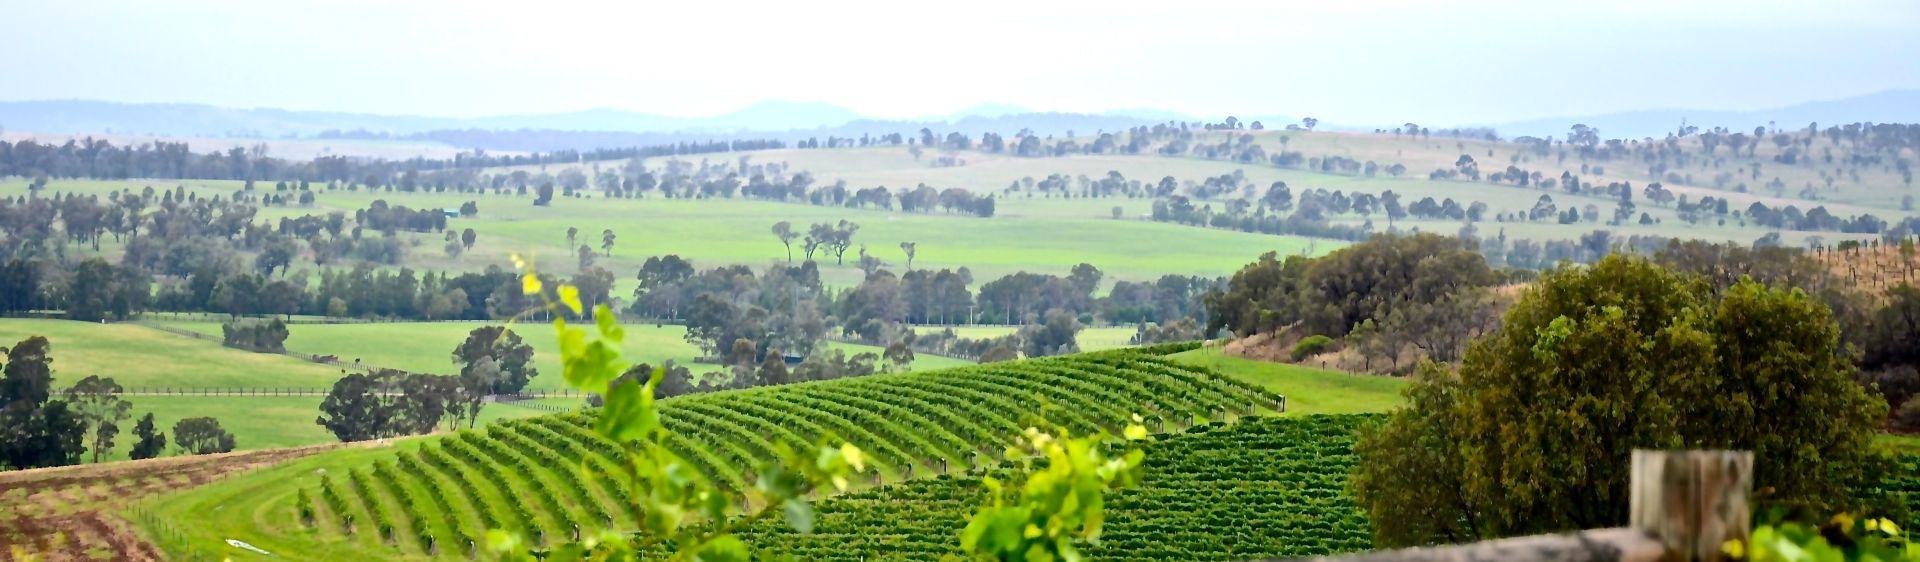 Vineyards at the Hollydene Estate Wines and Vines Restaurant in Singleton